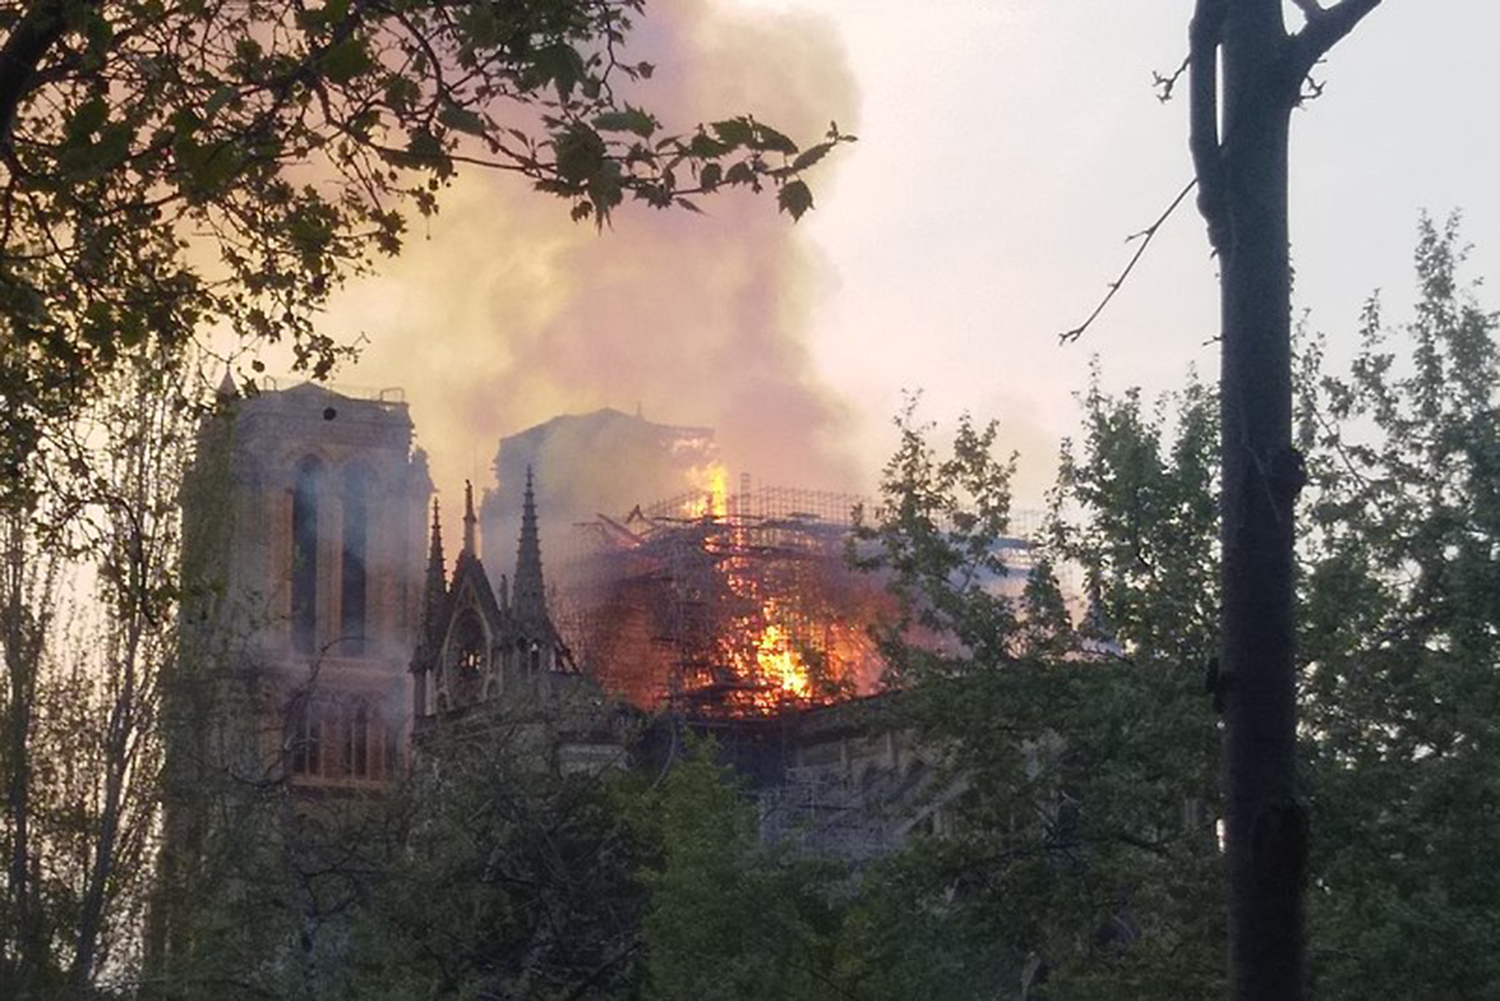 The Notre Dame Cathedral caught on fire April 15 at 5:30 p.m.